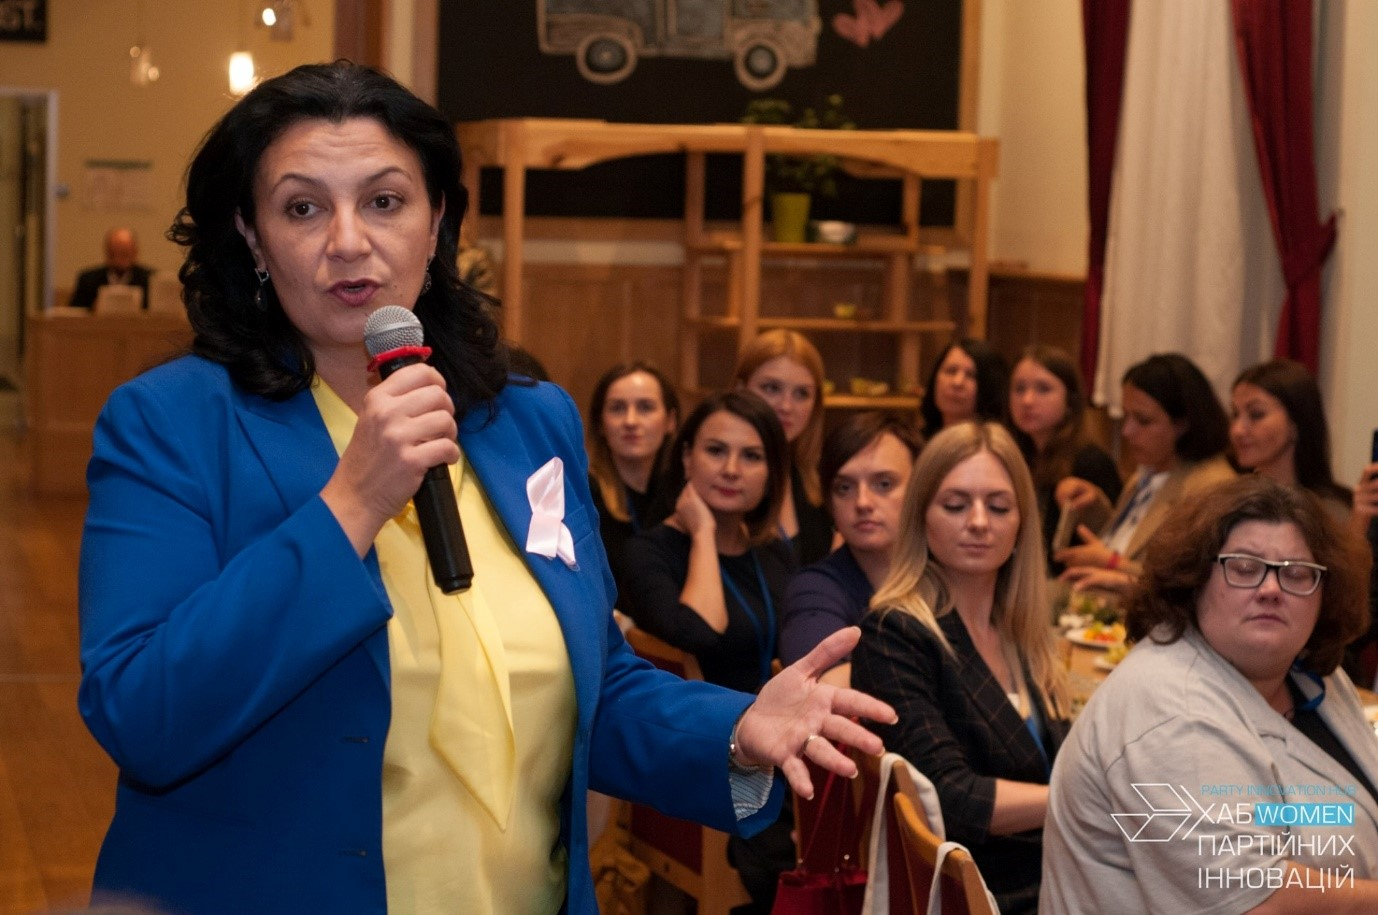 Ivanna Klympush-Tsintsadze, former vice prime minister for European and Euro-Atlantic integration, speaking with participants of the Party Innovations Hub Women, held in October 2019.Photo credit: International IDEA